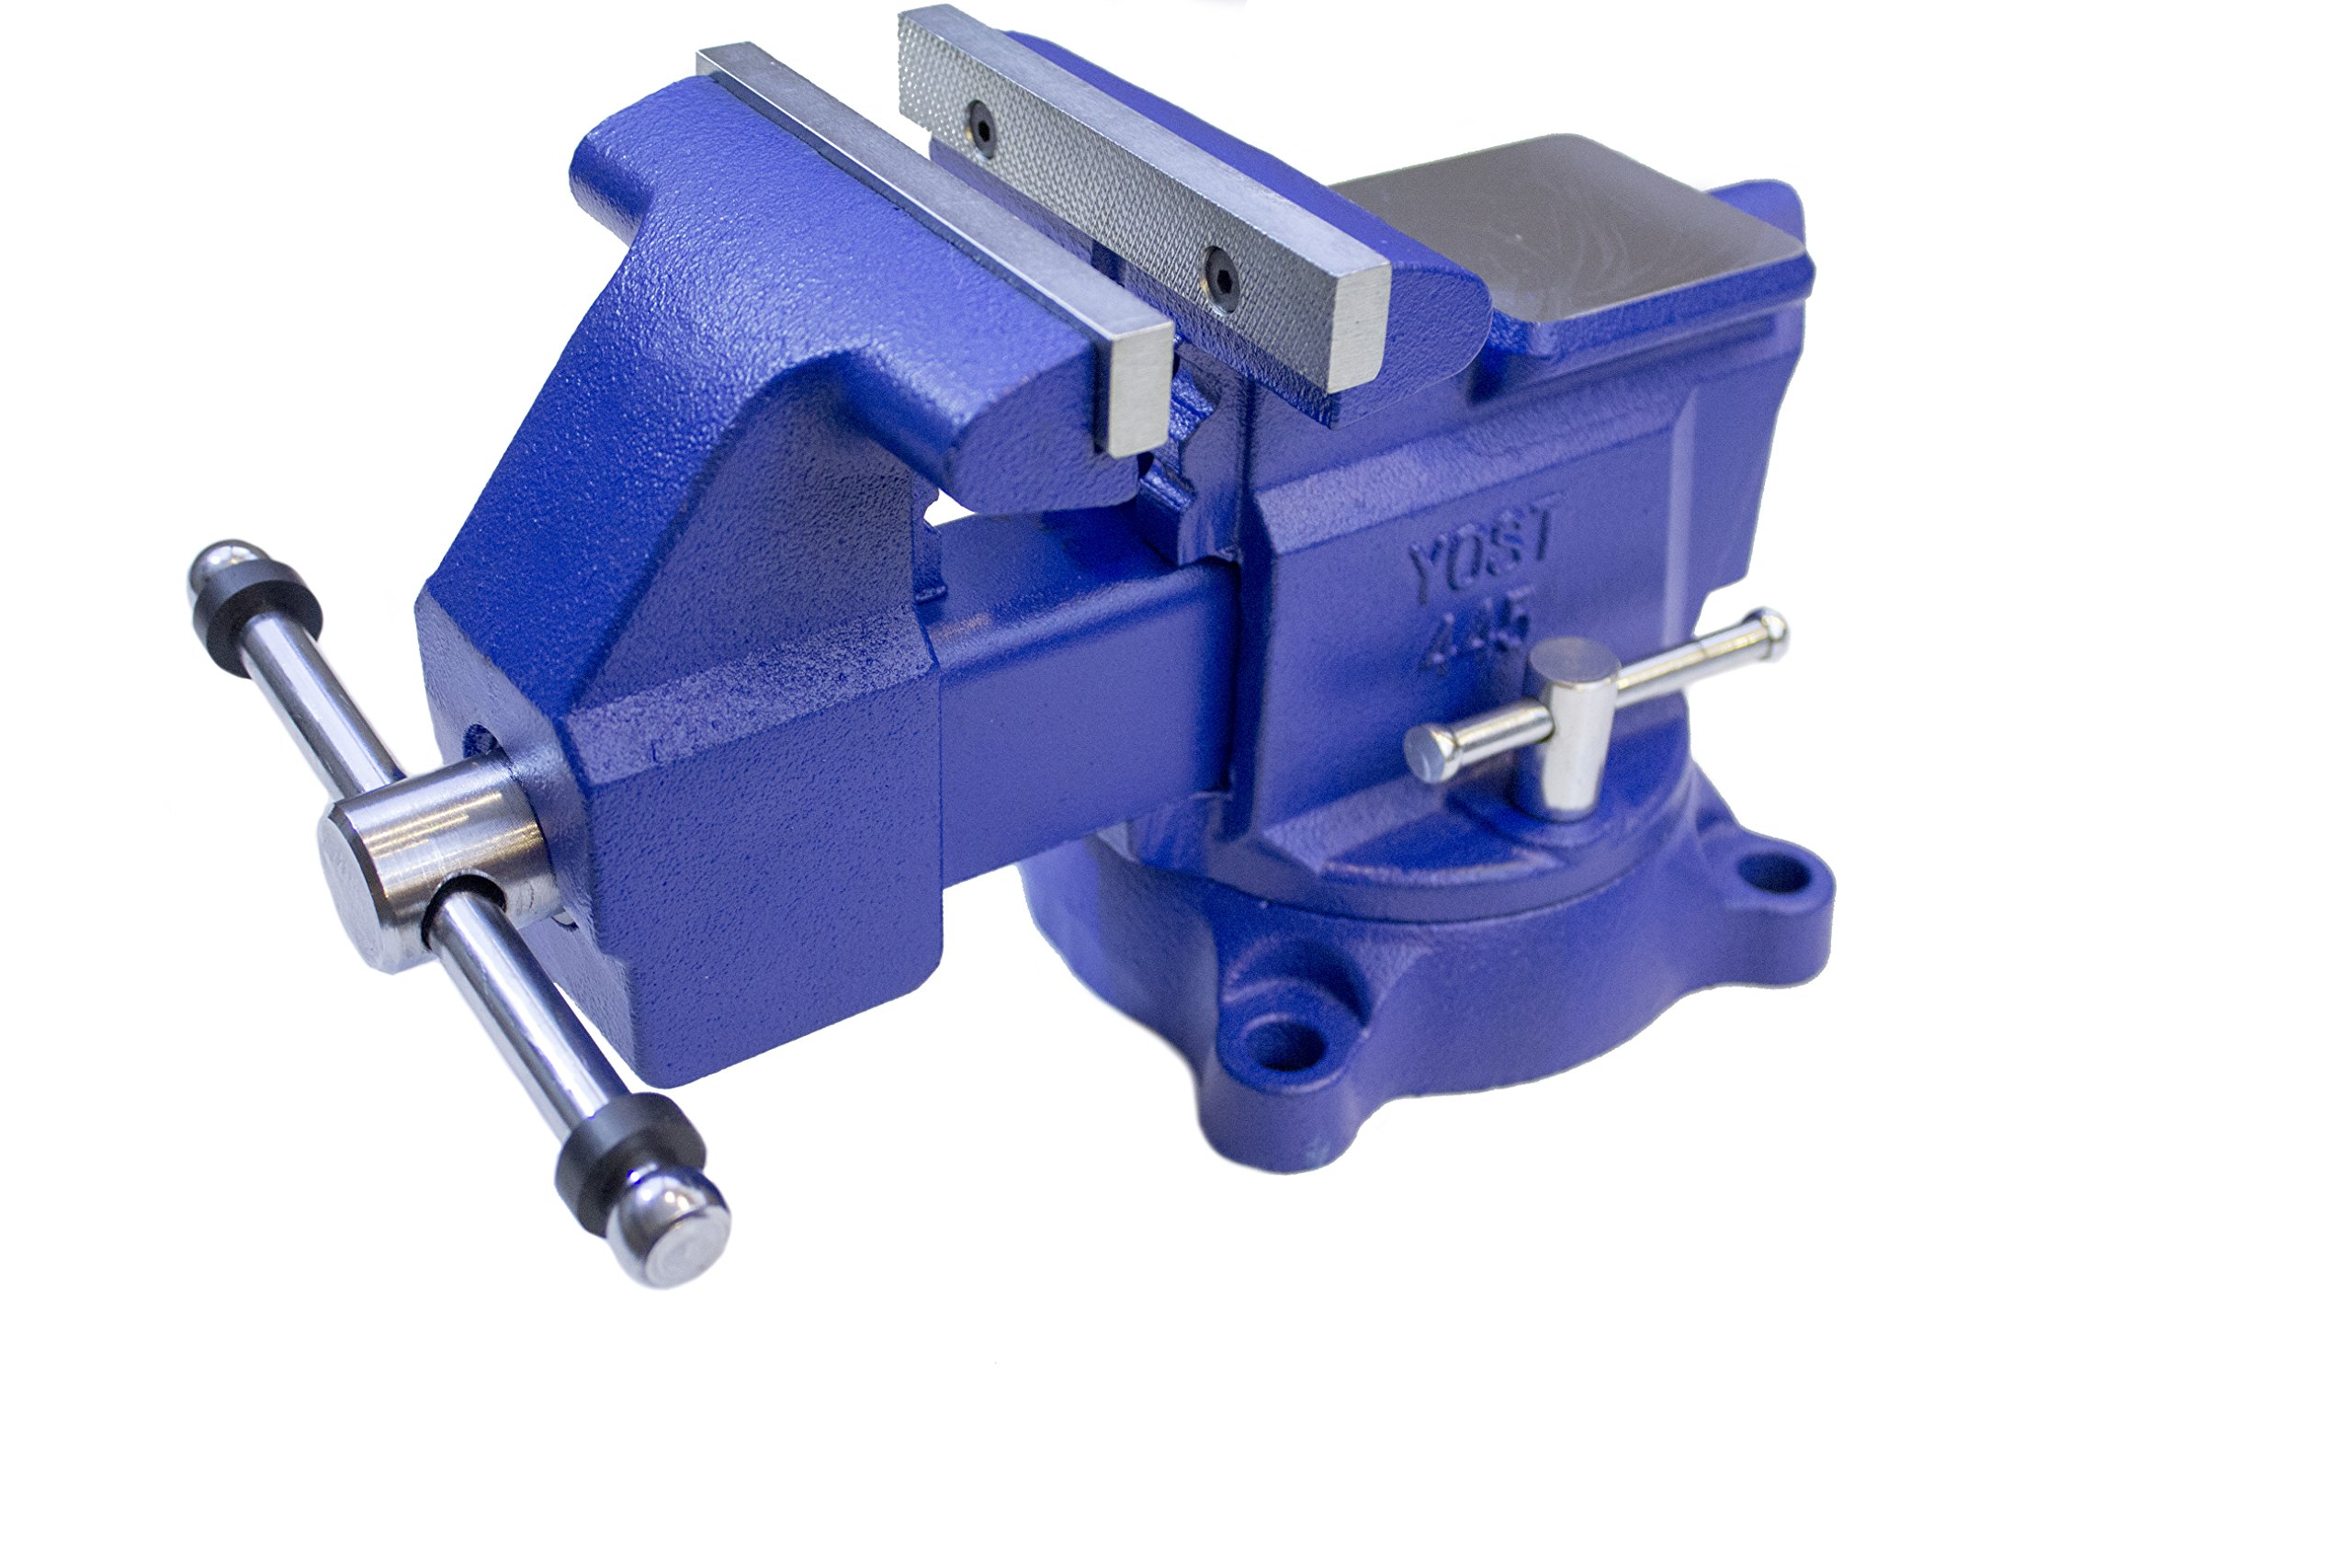 Yost Vises 465 6.5'' Combination Pipe and Bench Vise